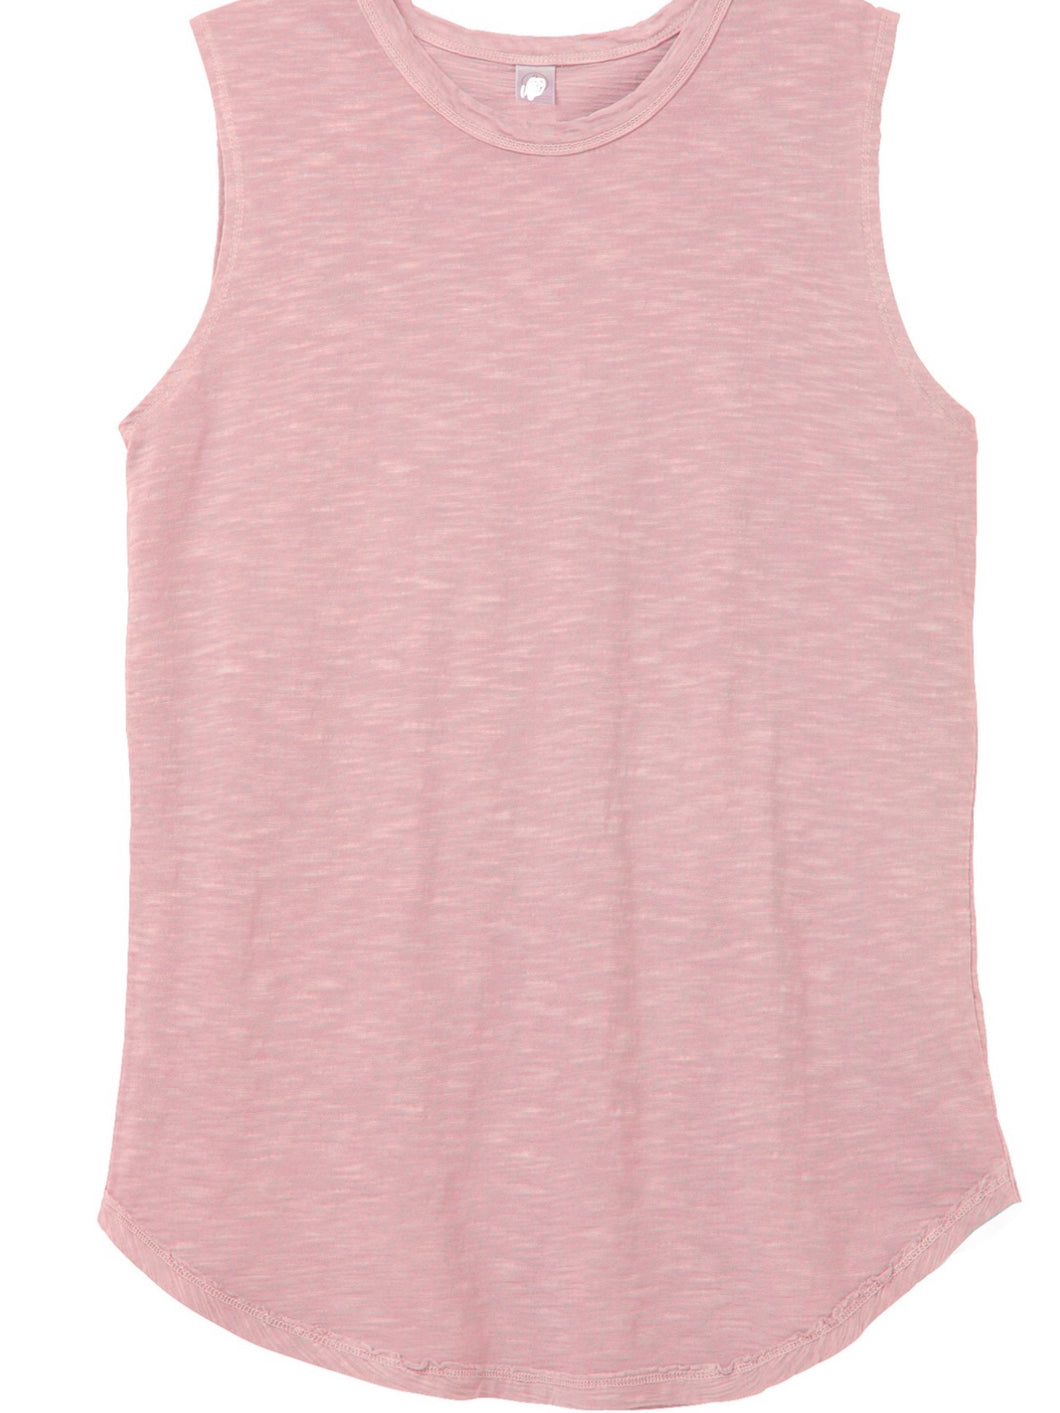 Pink Muscle Tee